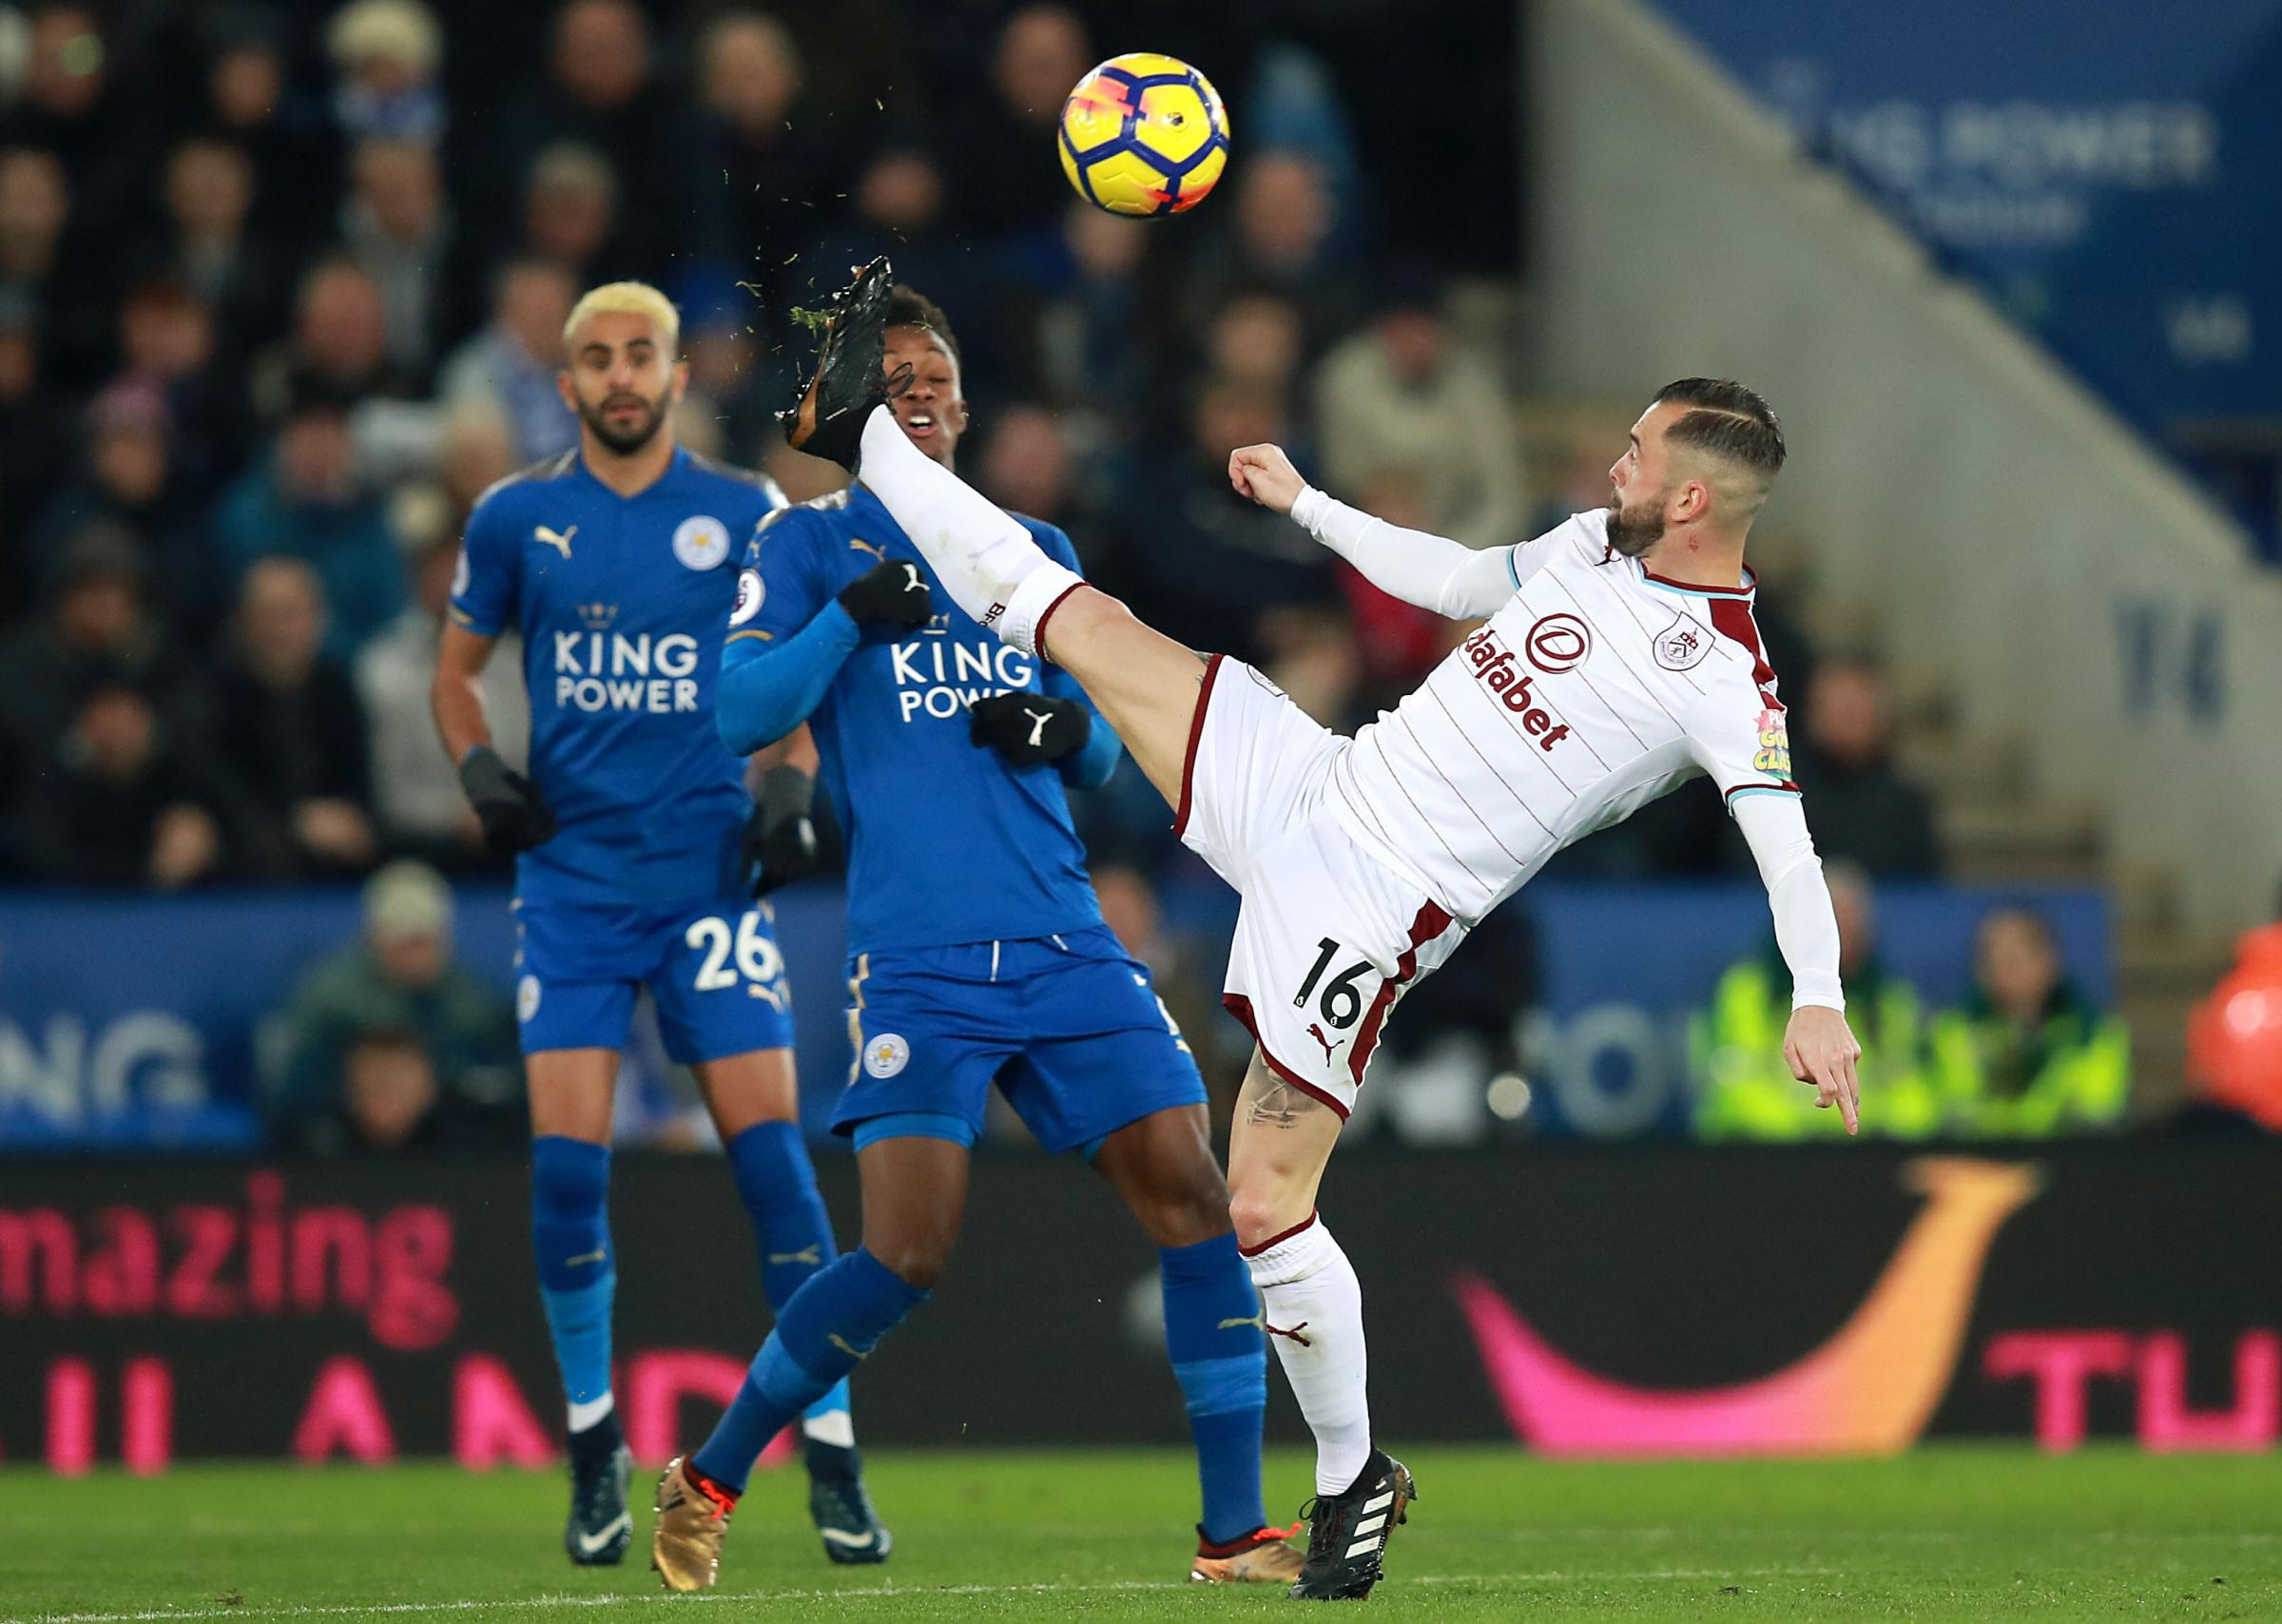 Steven Defour battles to keep hold of the ball against Leicester